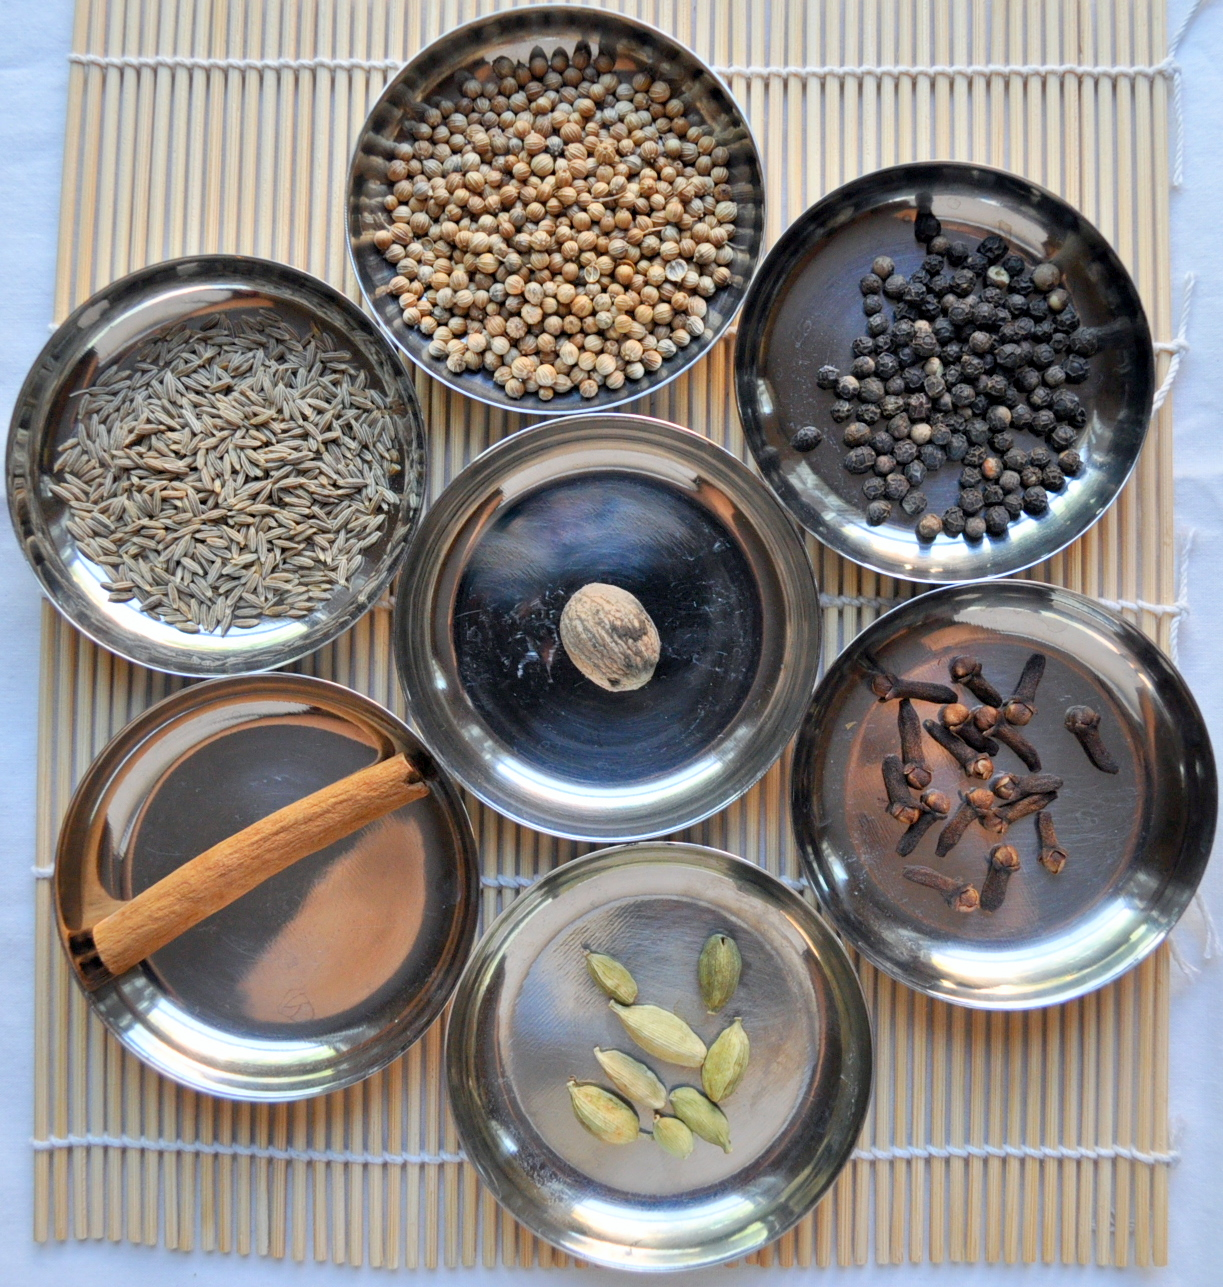 How to build an indian pantry garam masala the hathi cooks the ingredients center nutmeg clowise from top coriander black pepper cloves cardamom cinnamon cumin forumfinder Gallery